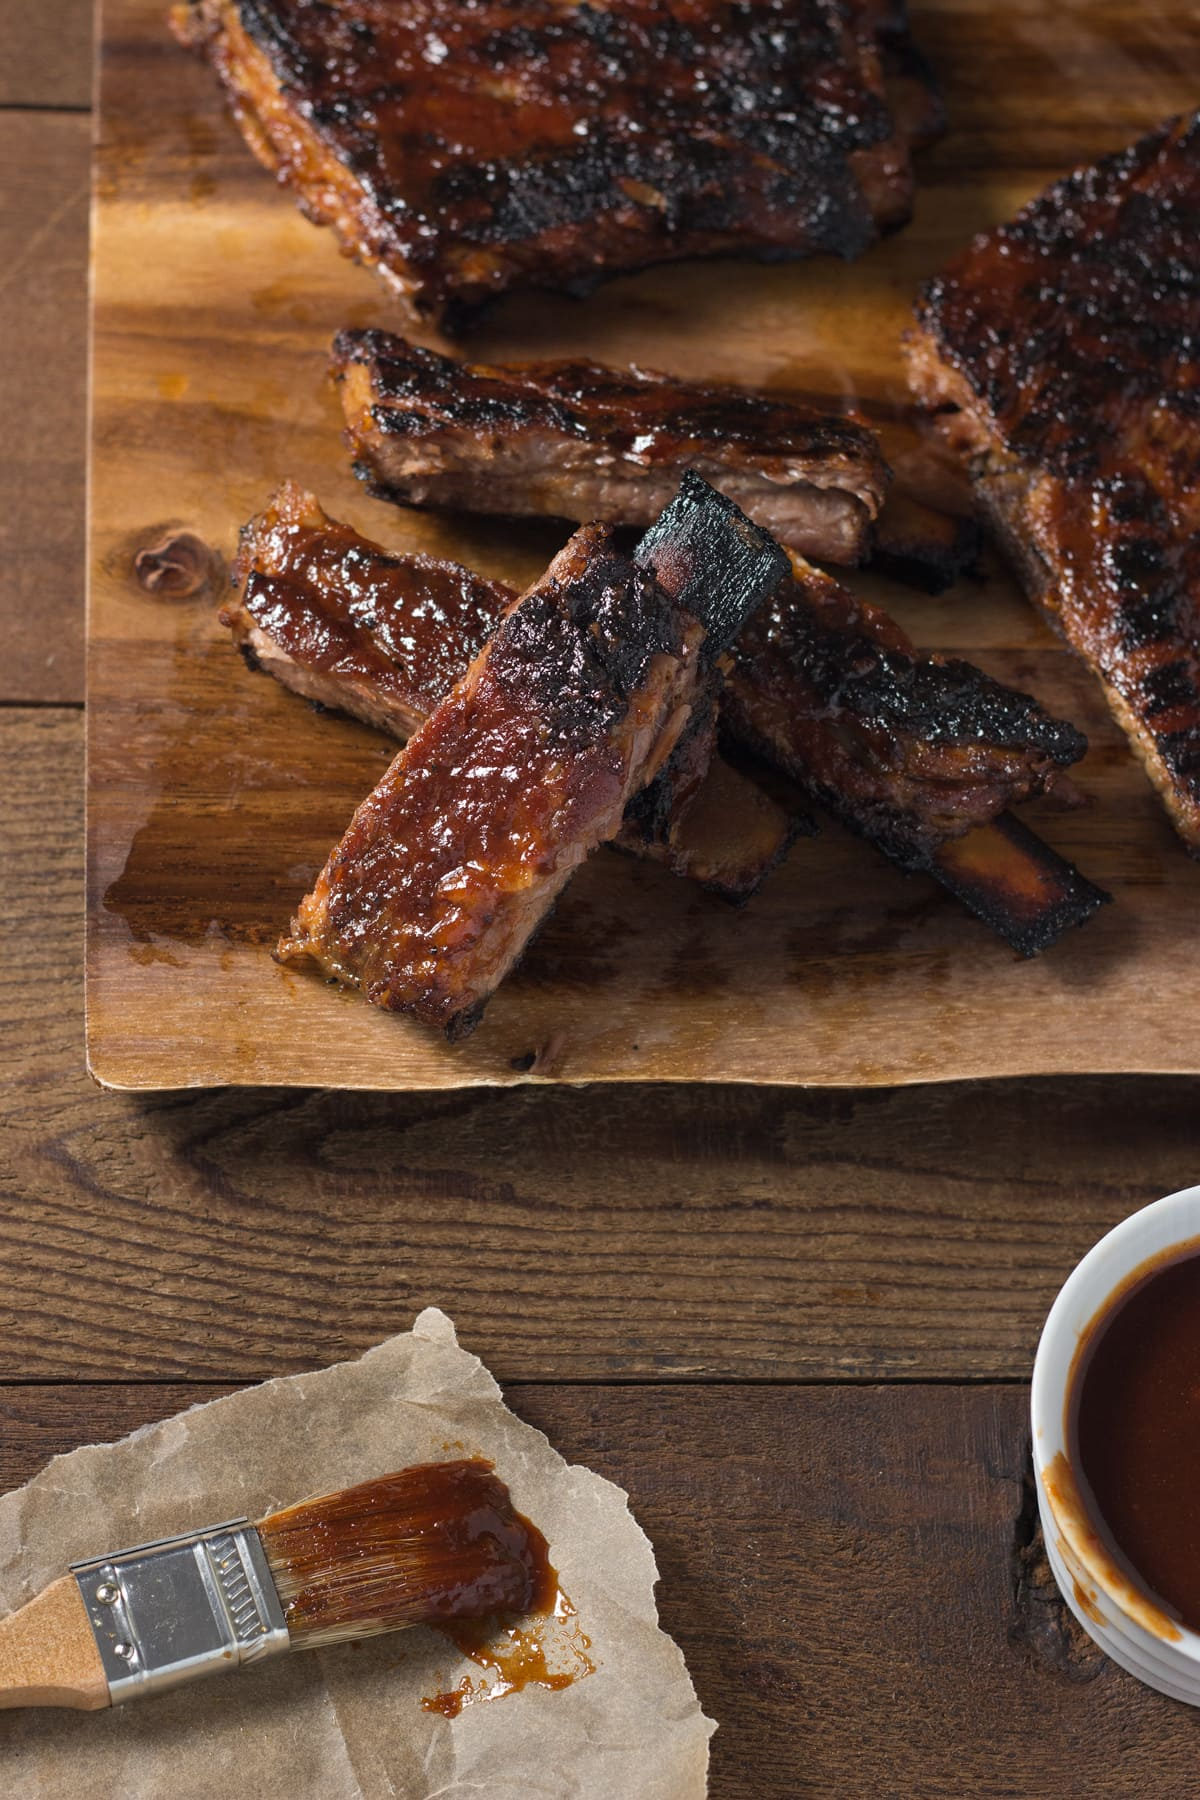 Group of Korean BBQ pork ribs on a cutting board next to a bowl of barbecue sauce and a pastry brush.